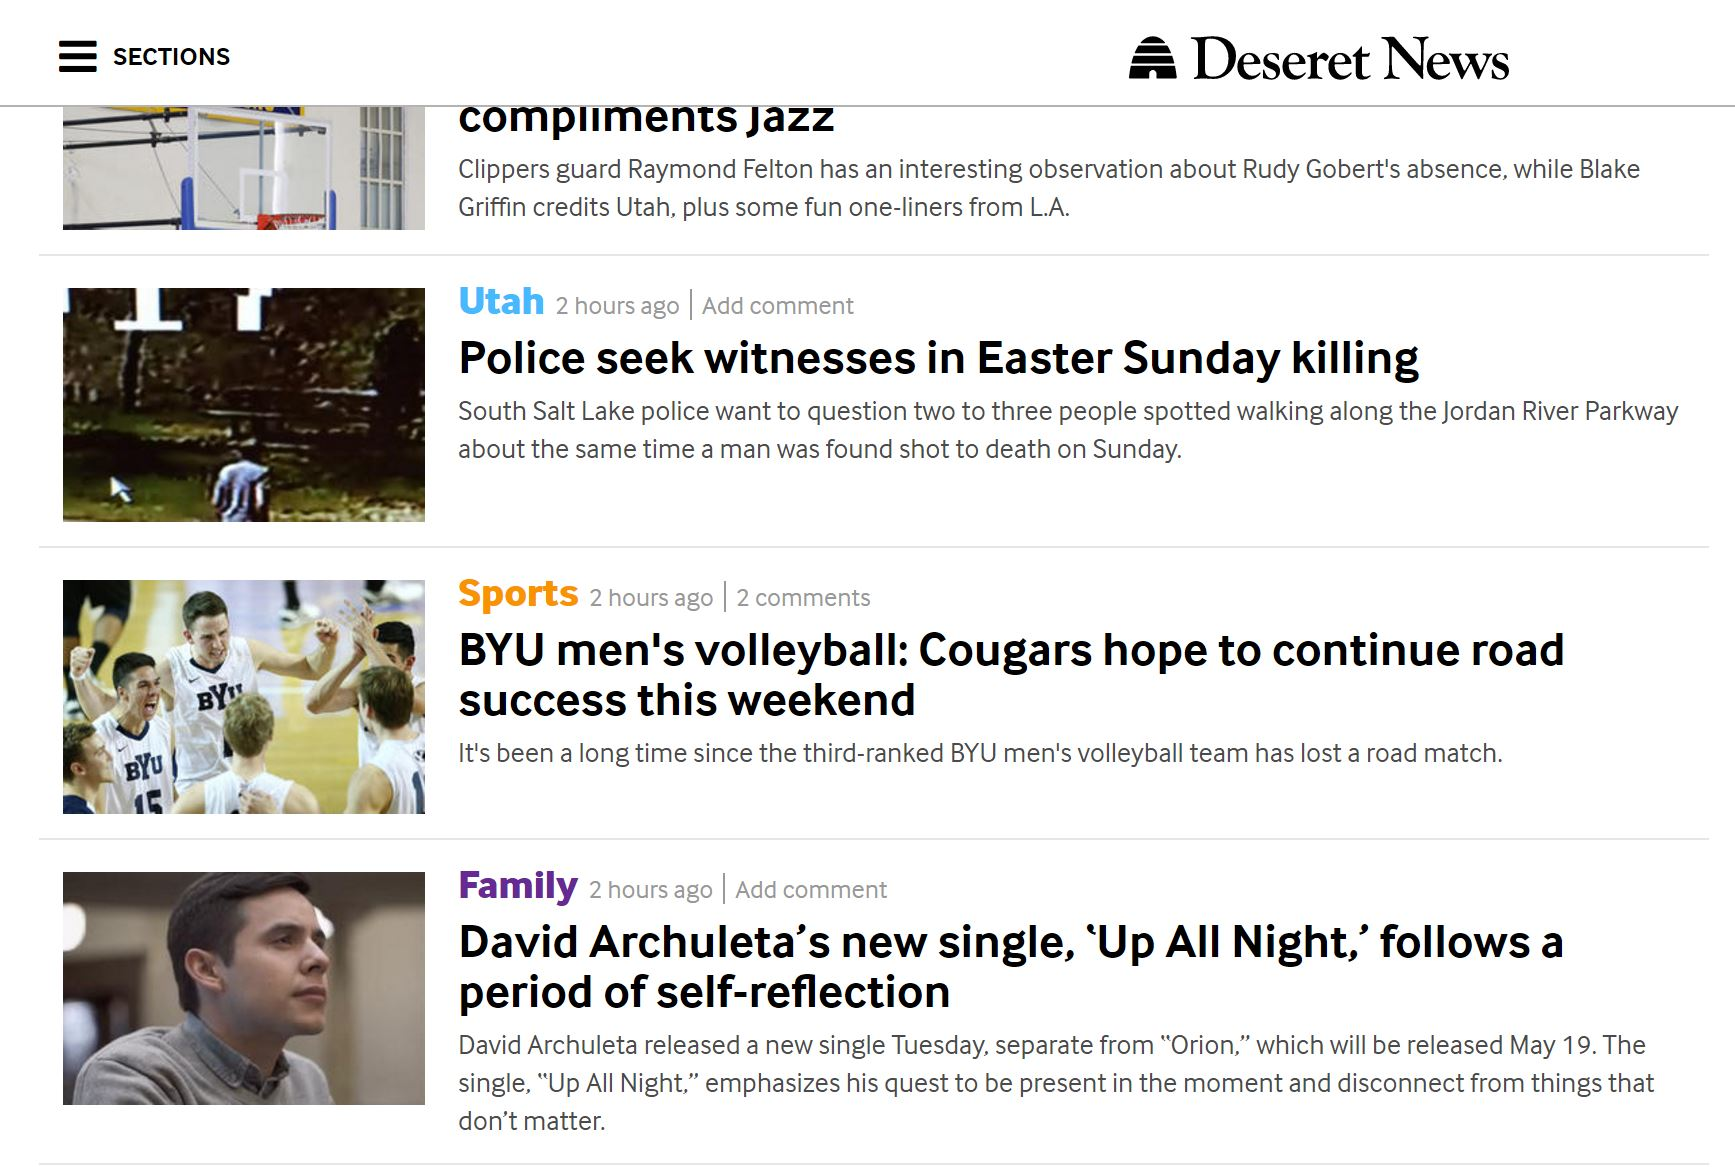 deseret news tweet